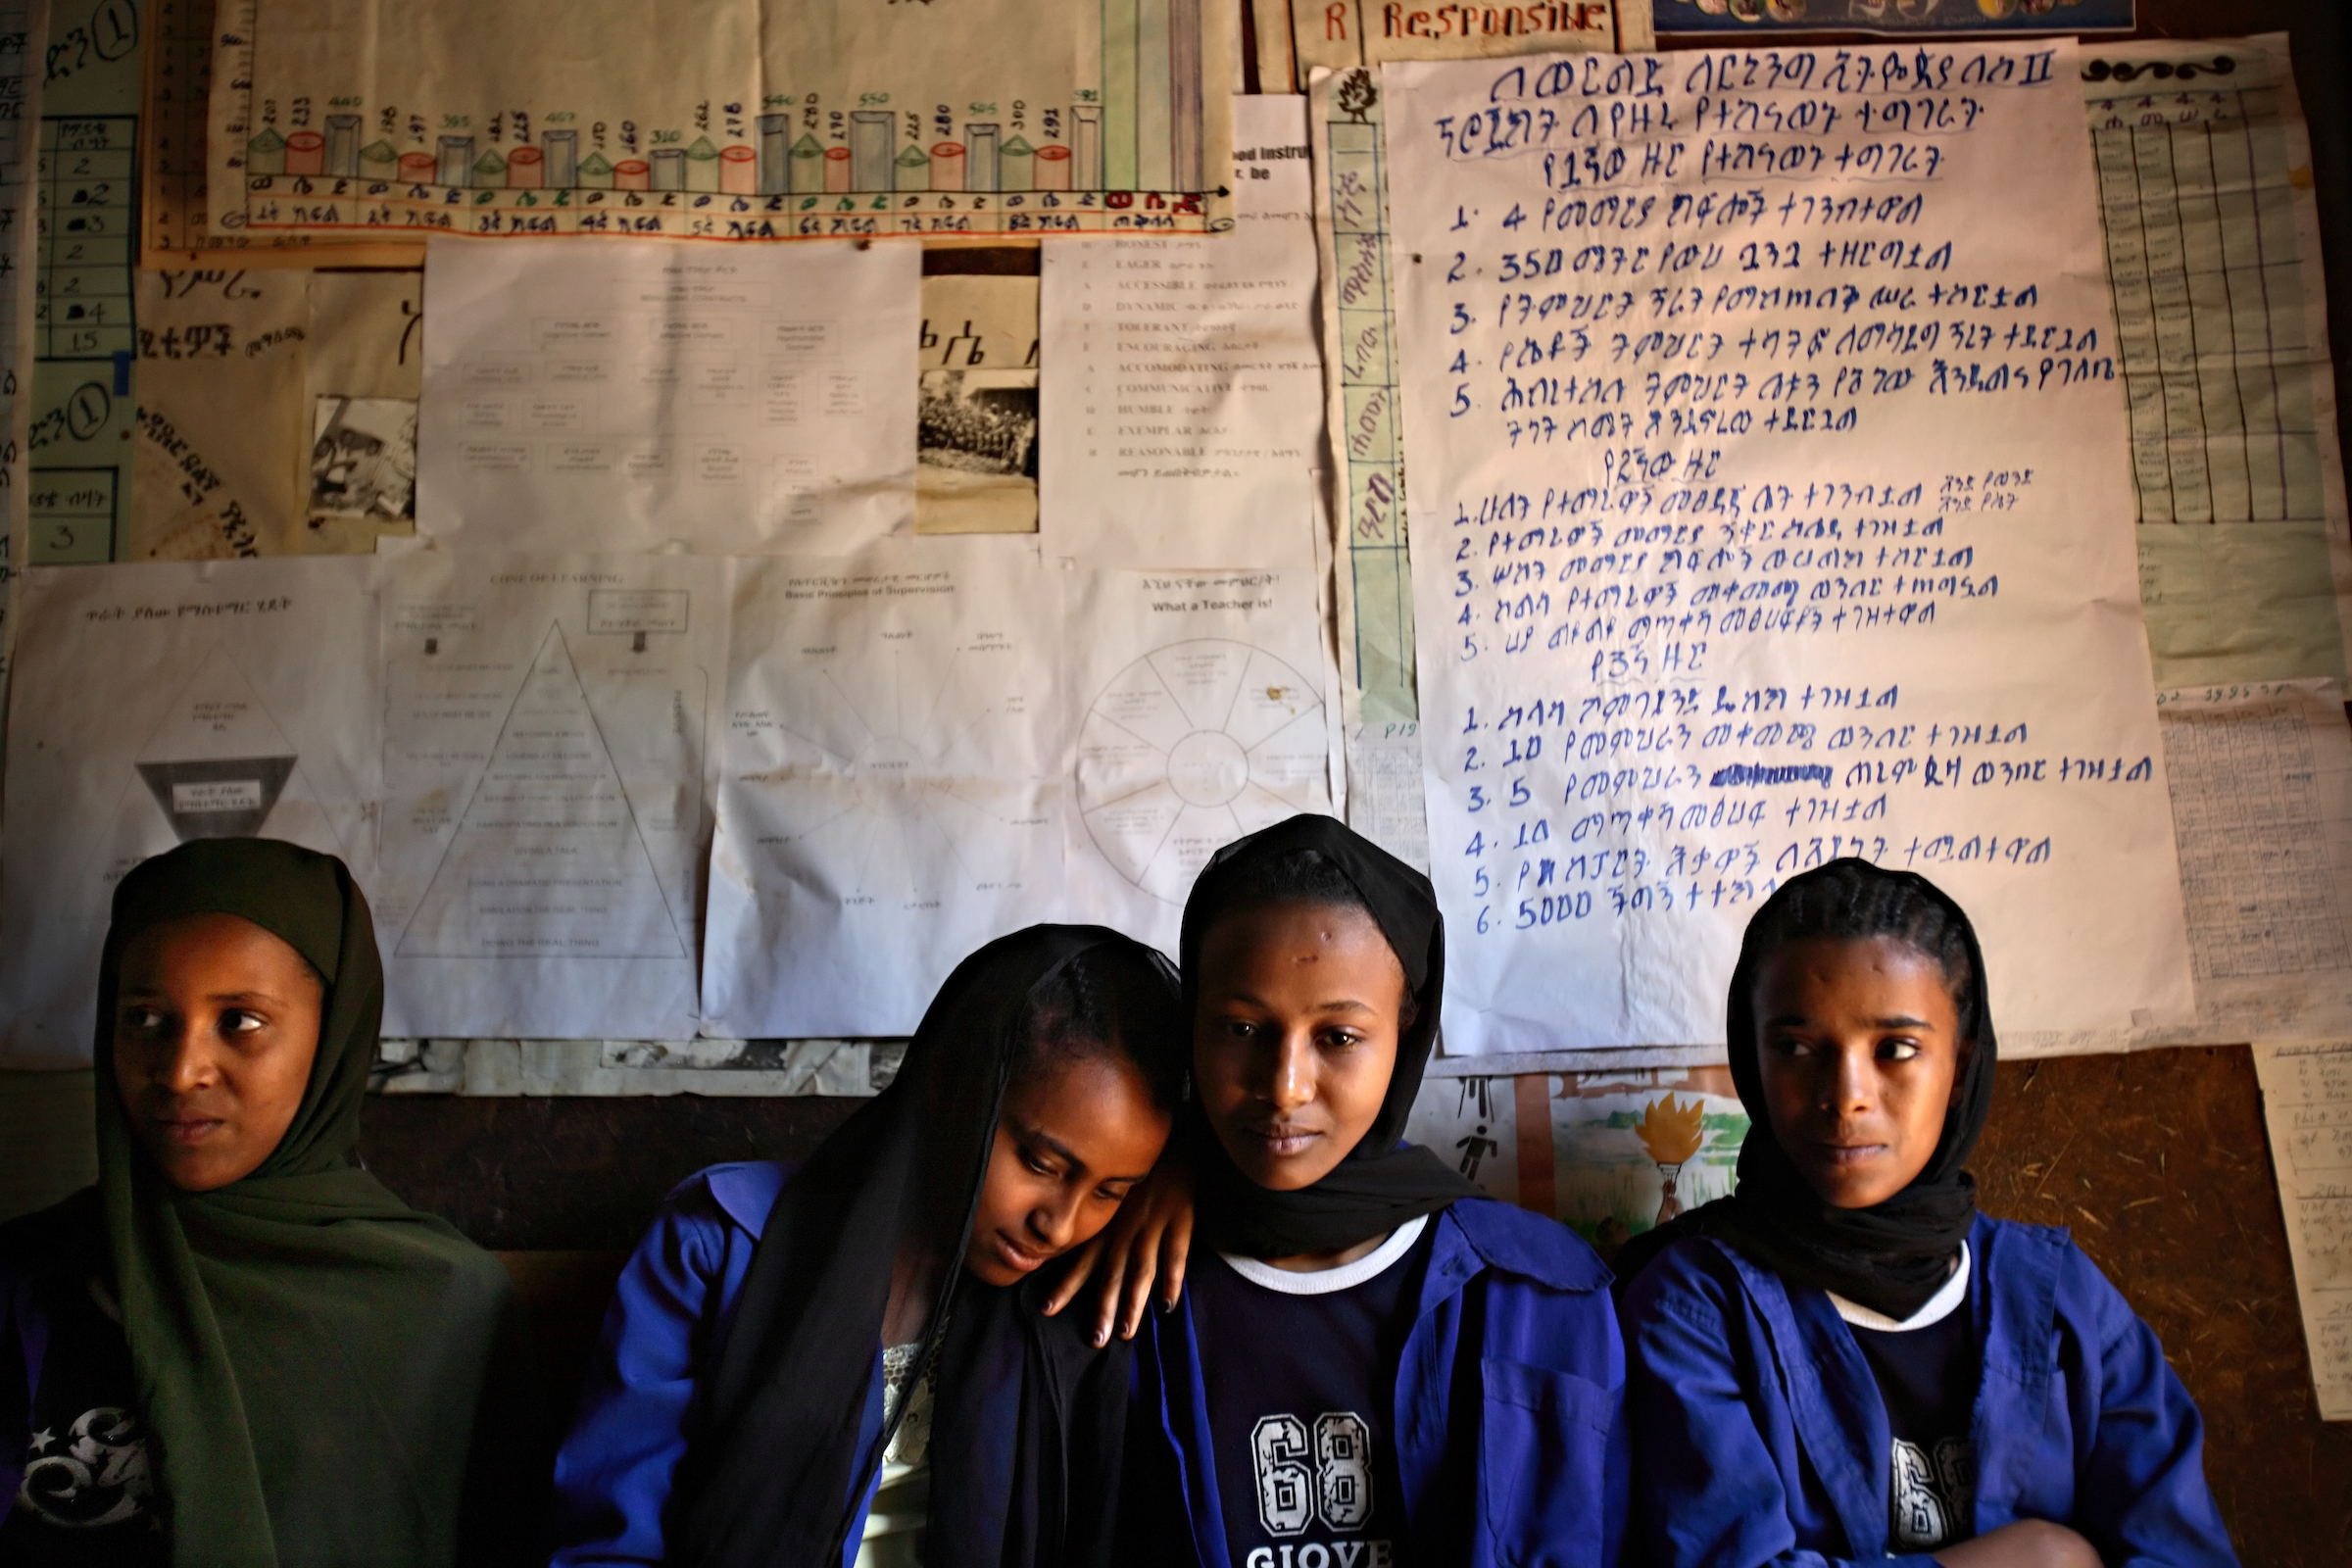 Four married and betrothed Muslim girls attend school near Bahir Dar, Ethiopia. Most married girls, who would like to continue their schooling, are often prevented from doing so.